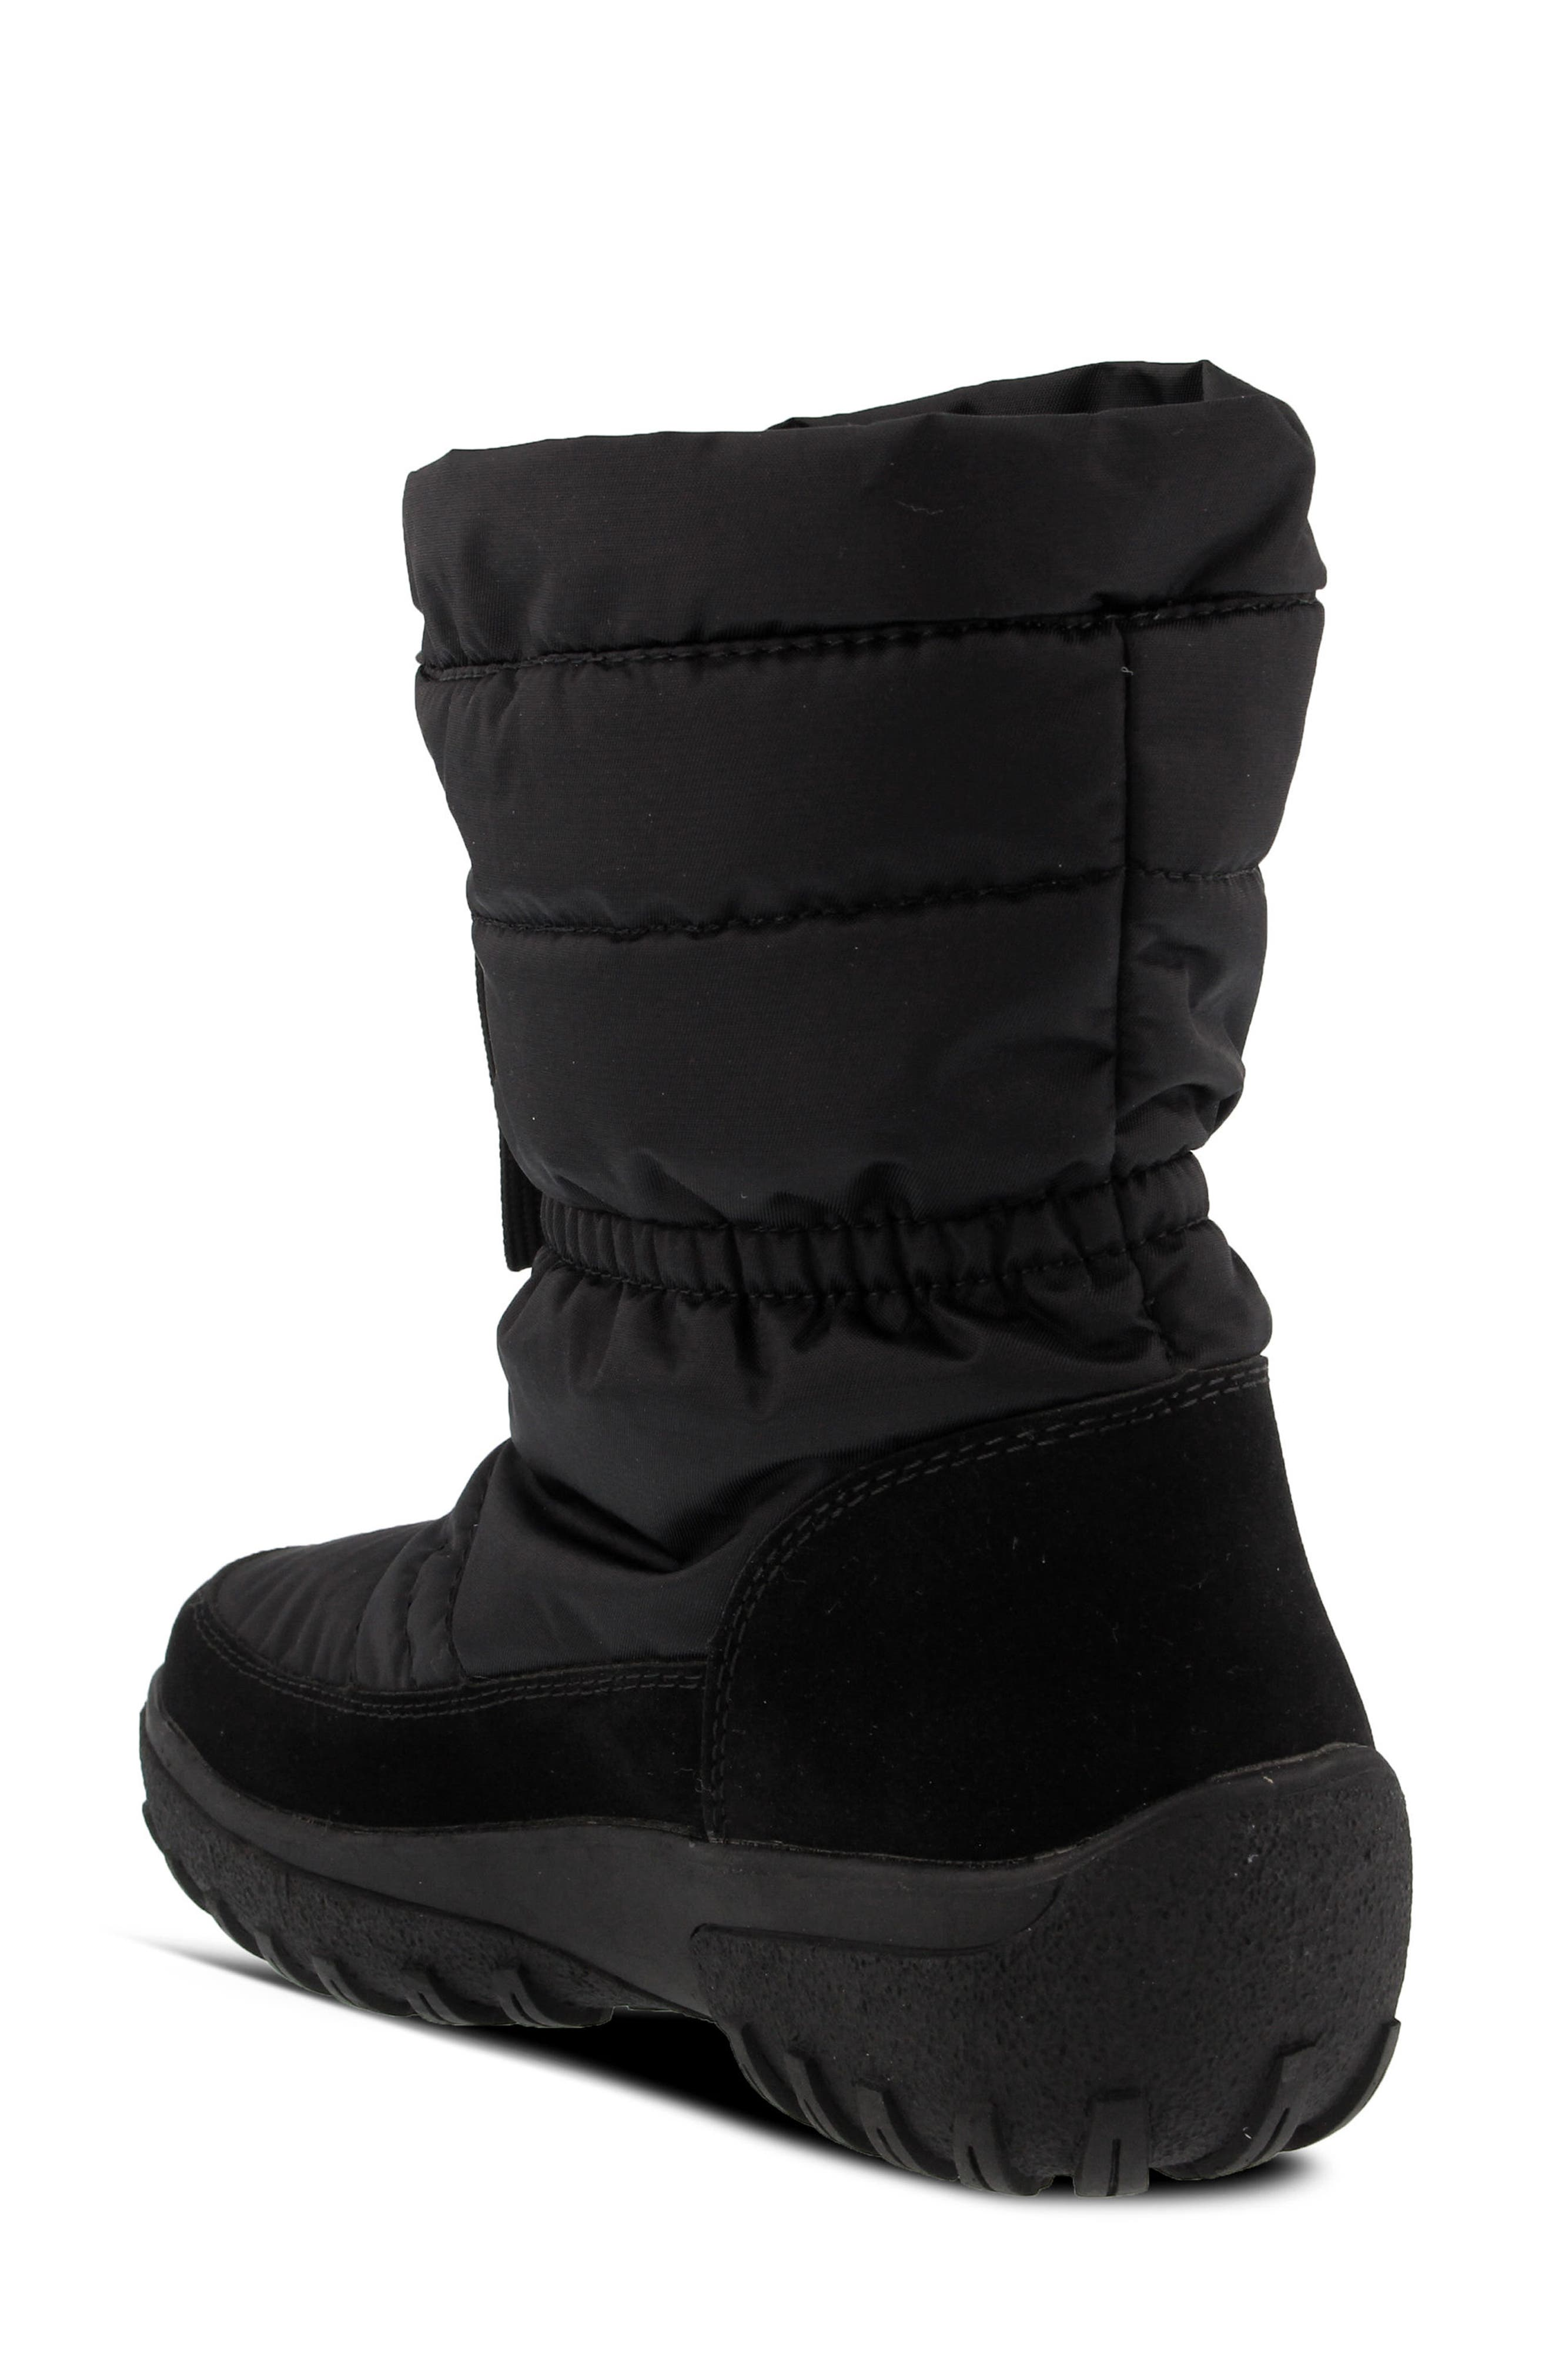 Lucerne Waterproof Drawstring Boot,                             Alternate thumbnail 3, color,